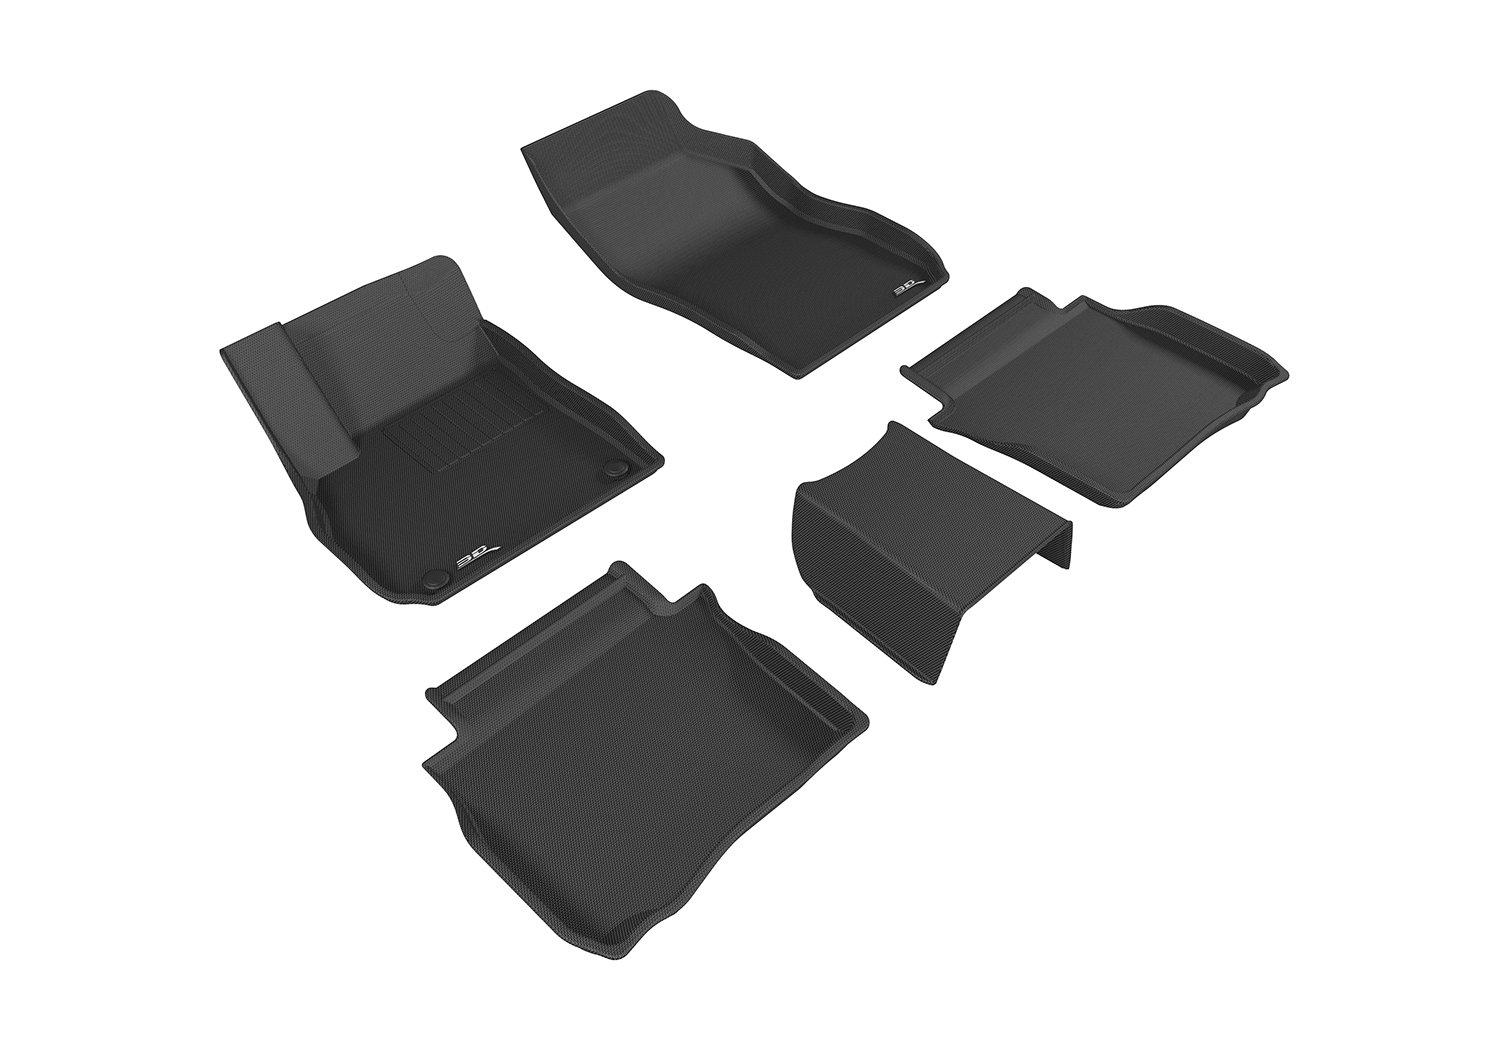 3D MAXpider Second Row Custom Fit All-Weather Floor Mat for Select Buick LaCrosse Models Black Kagu Rubber